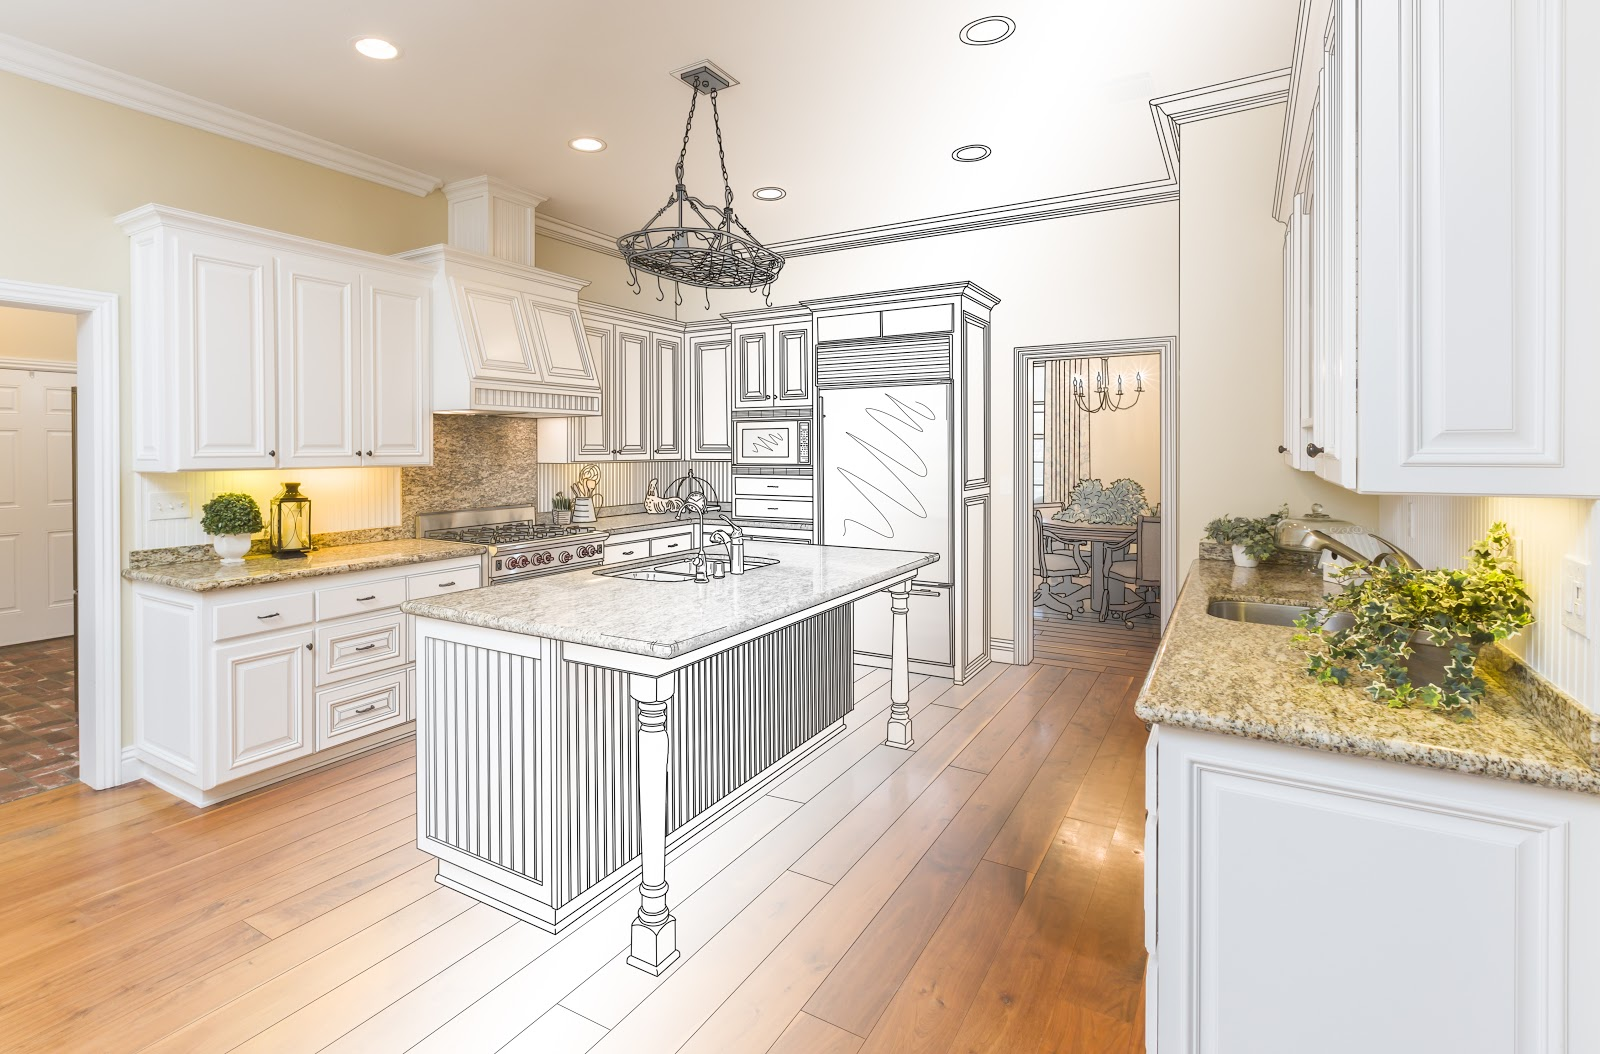 Common Remodel Mistakes to Avoid